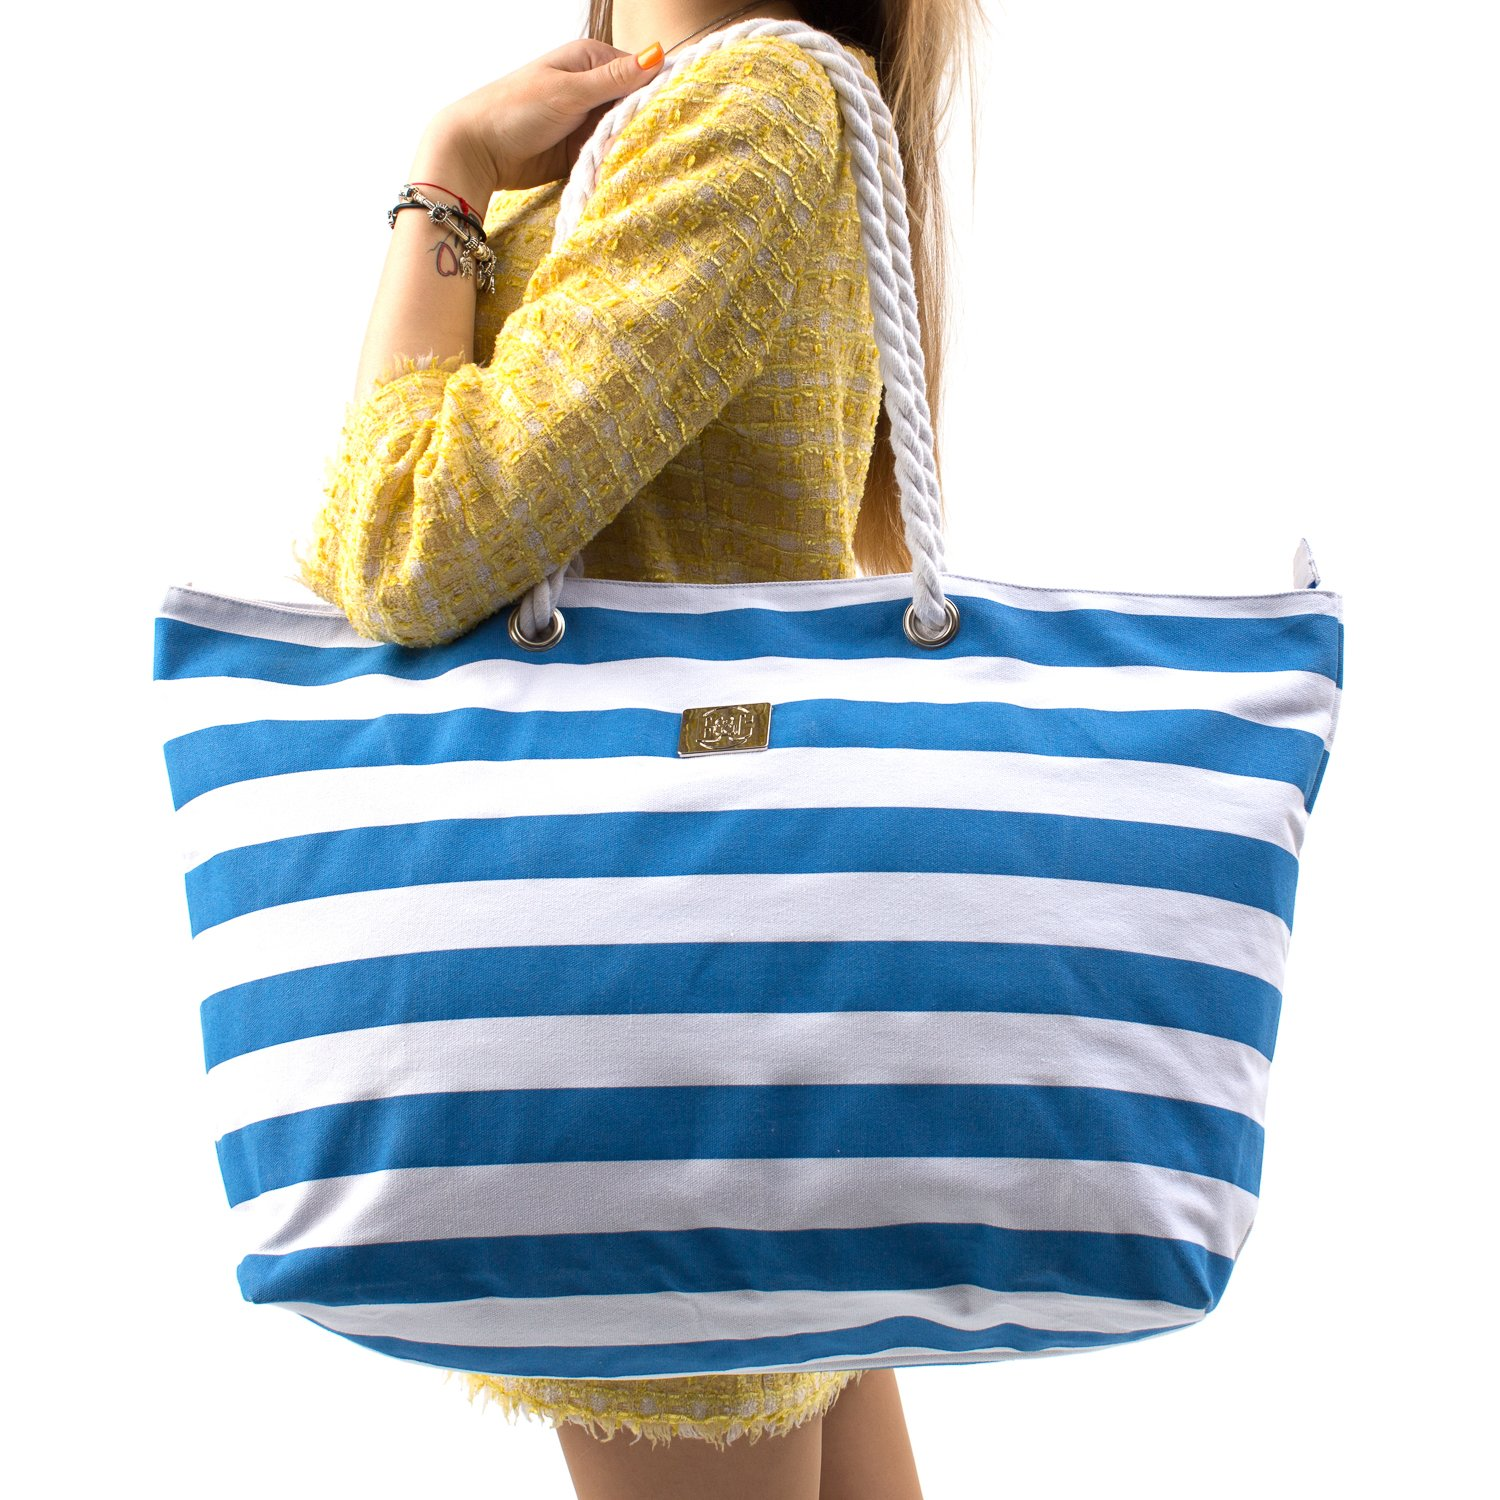 Large Canvas Beach Bag - Perfect Tote Bag For Holidays (Blue)